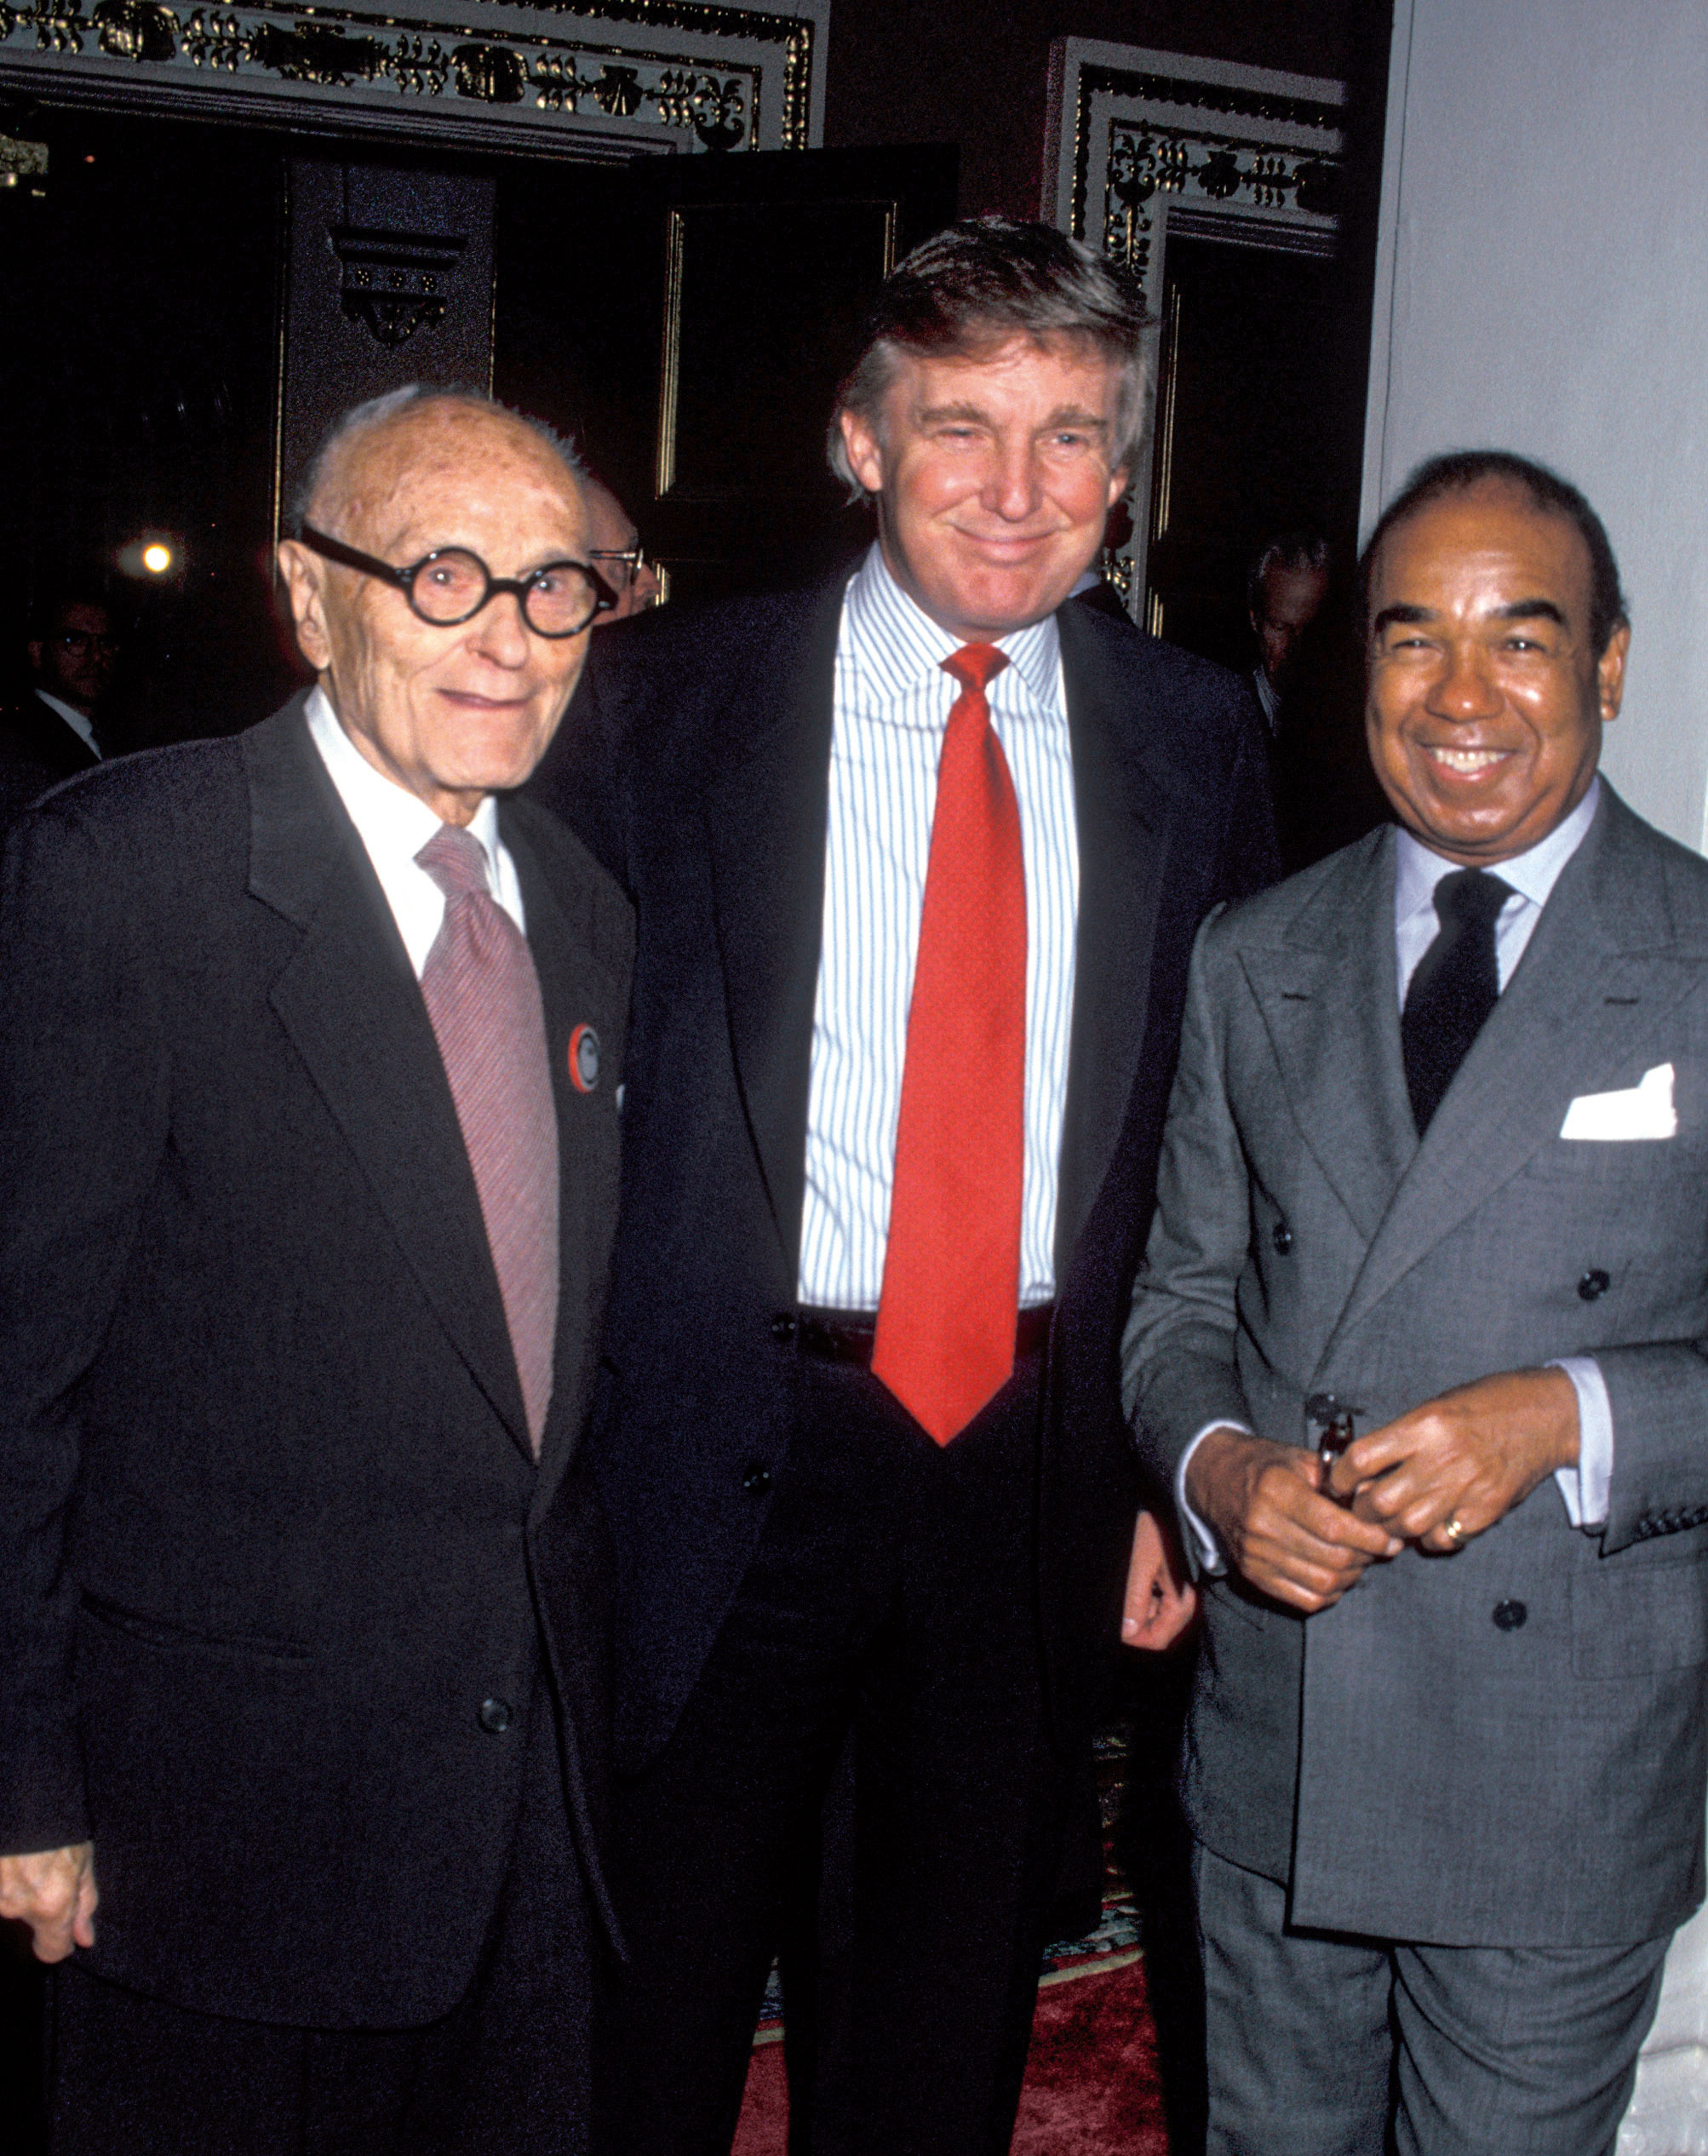 Philip Johnson, Donald Trump, and Bobby Short at Landmarks Preservation Foundation Honors Philip Johnson, the Plaza Hotel, New York, 20 October 1994. © Richard Payne, FAIA